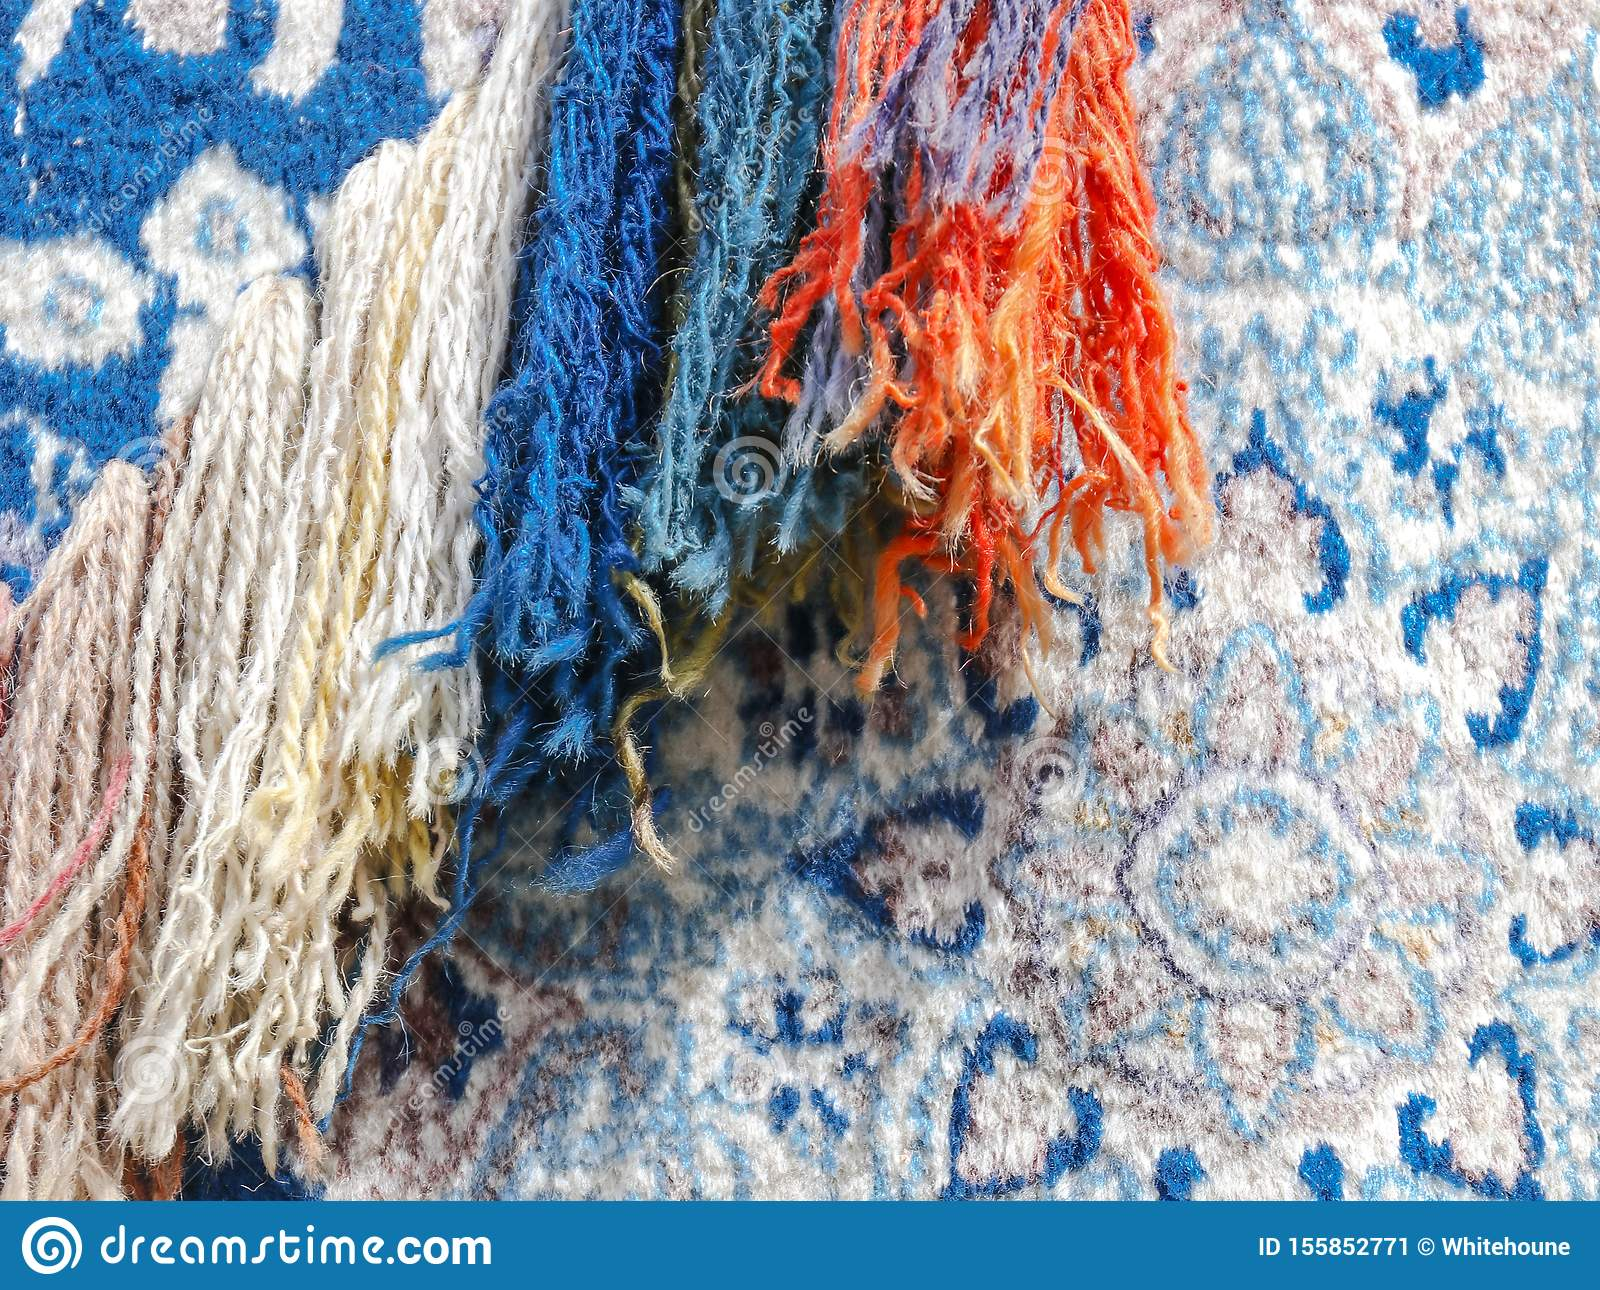 Abstract colorful background with close up view of an old carpet